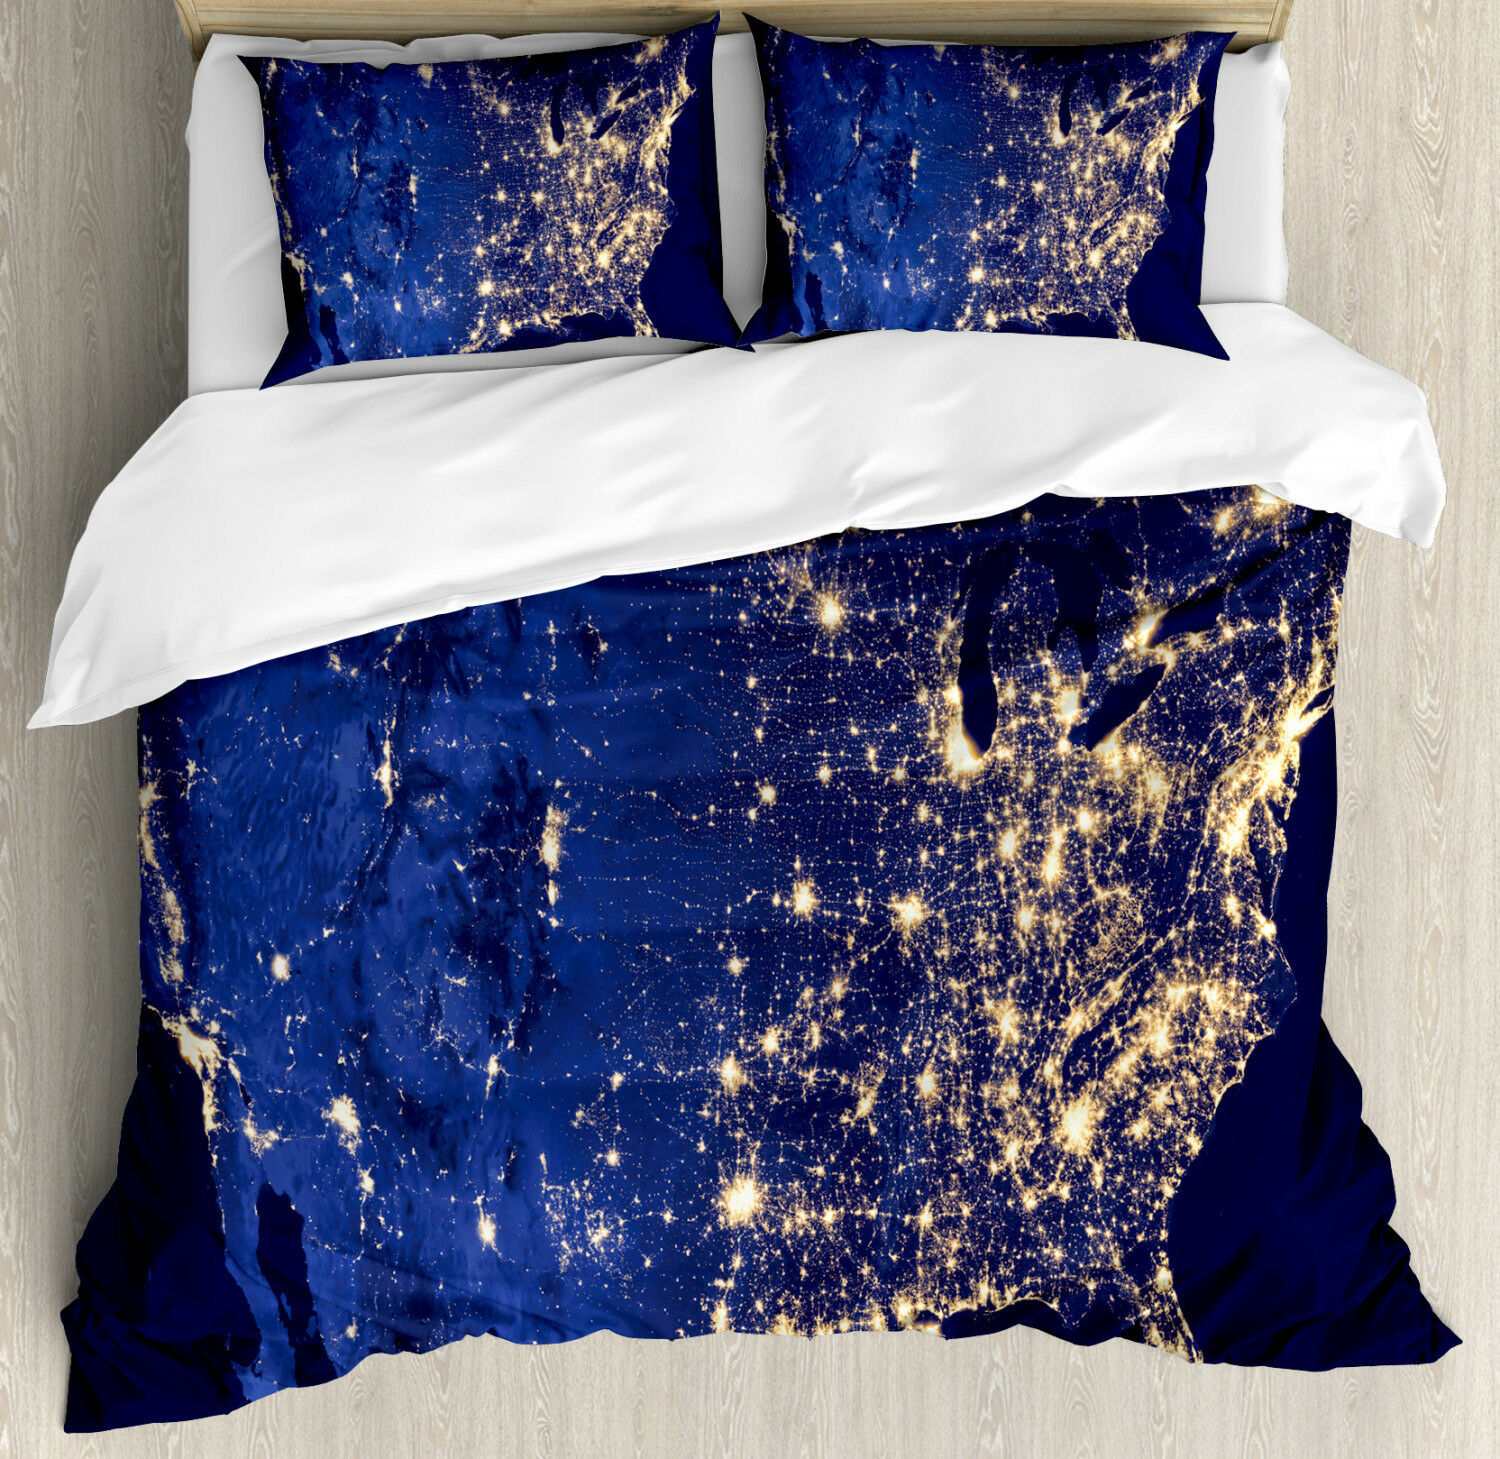 Night Duvet Cover Set with Pillow Shams America Continent Space Print